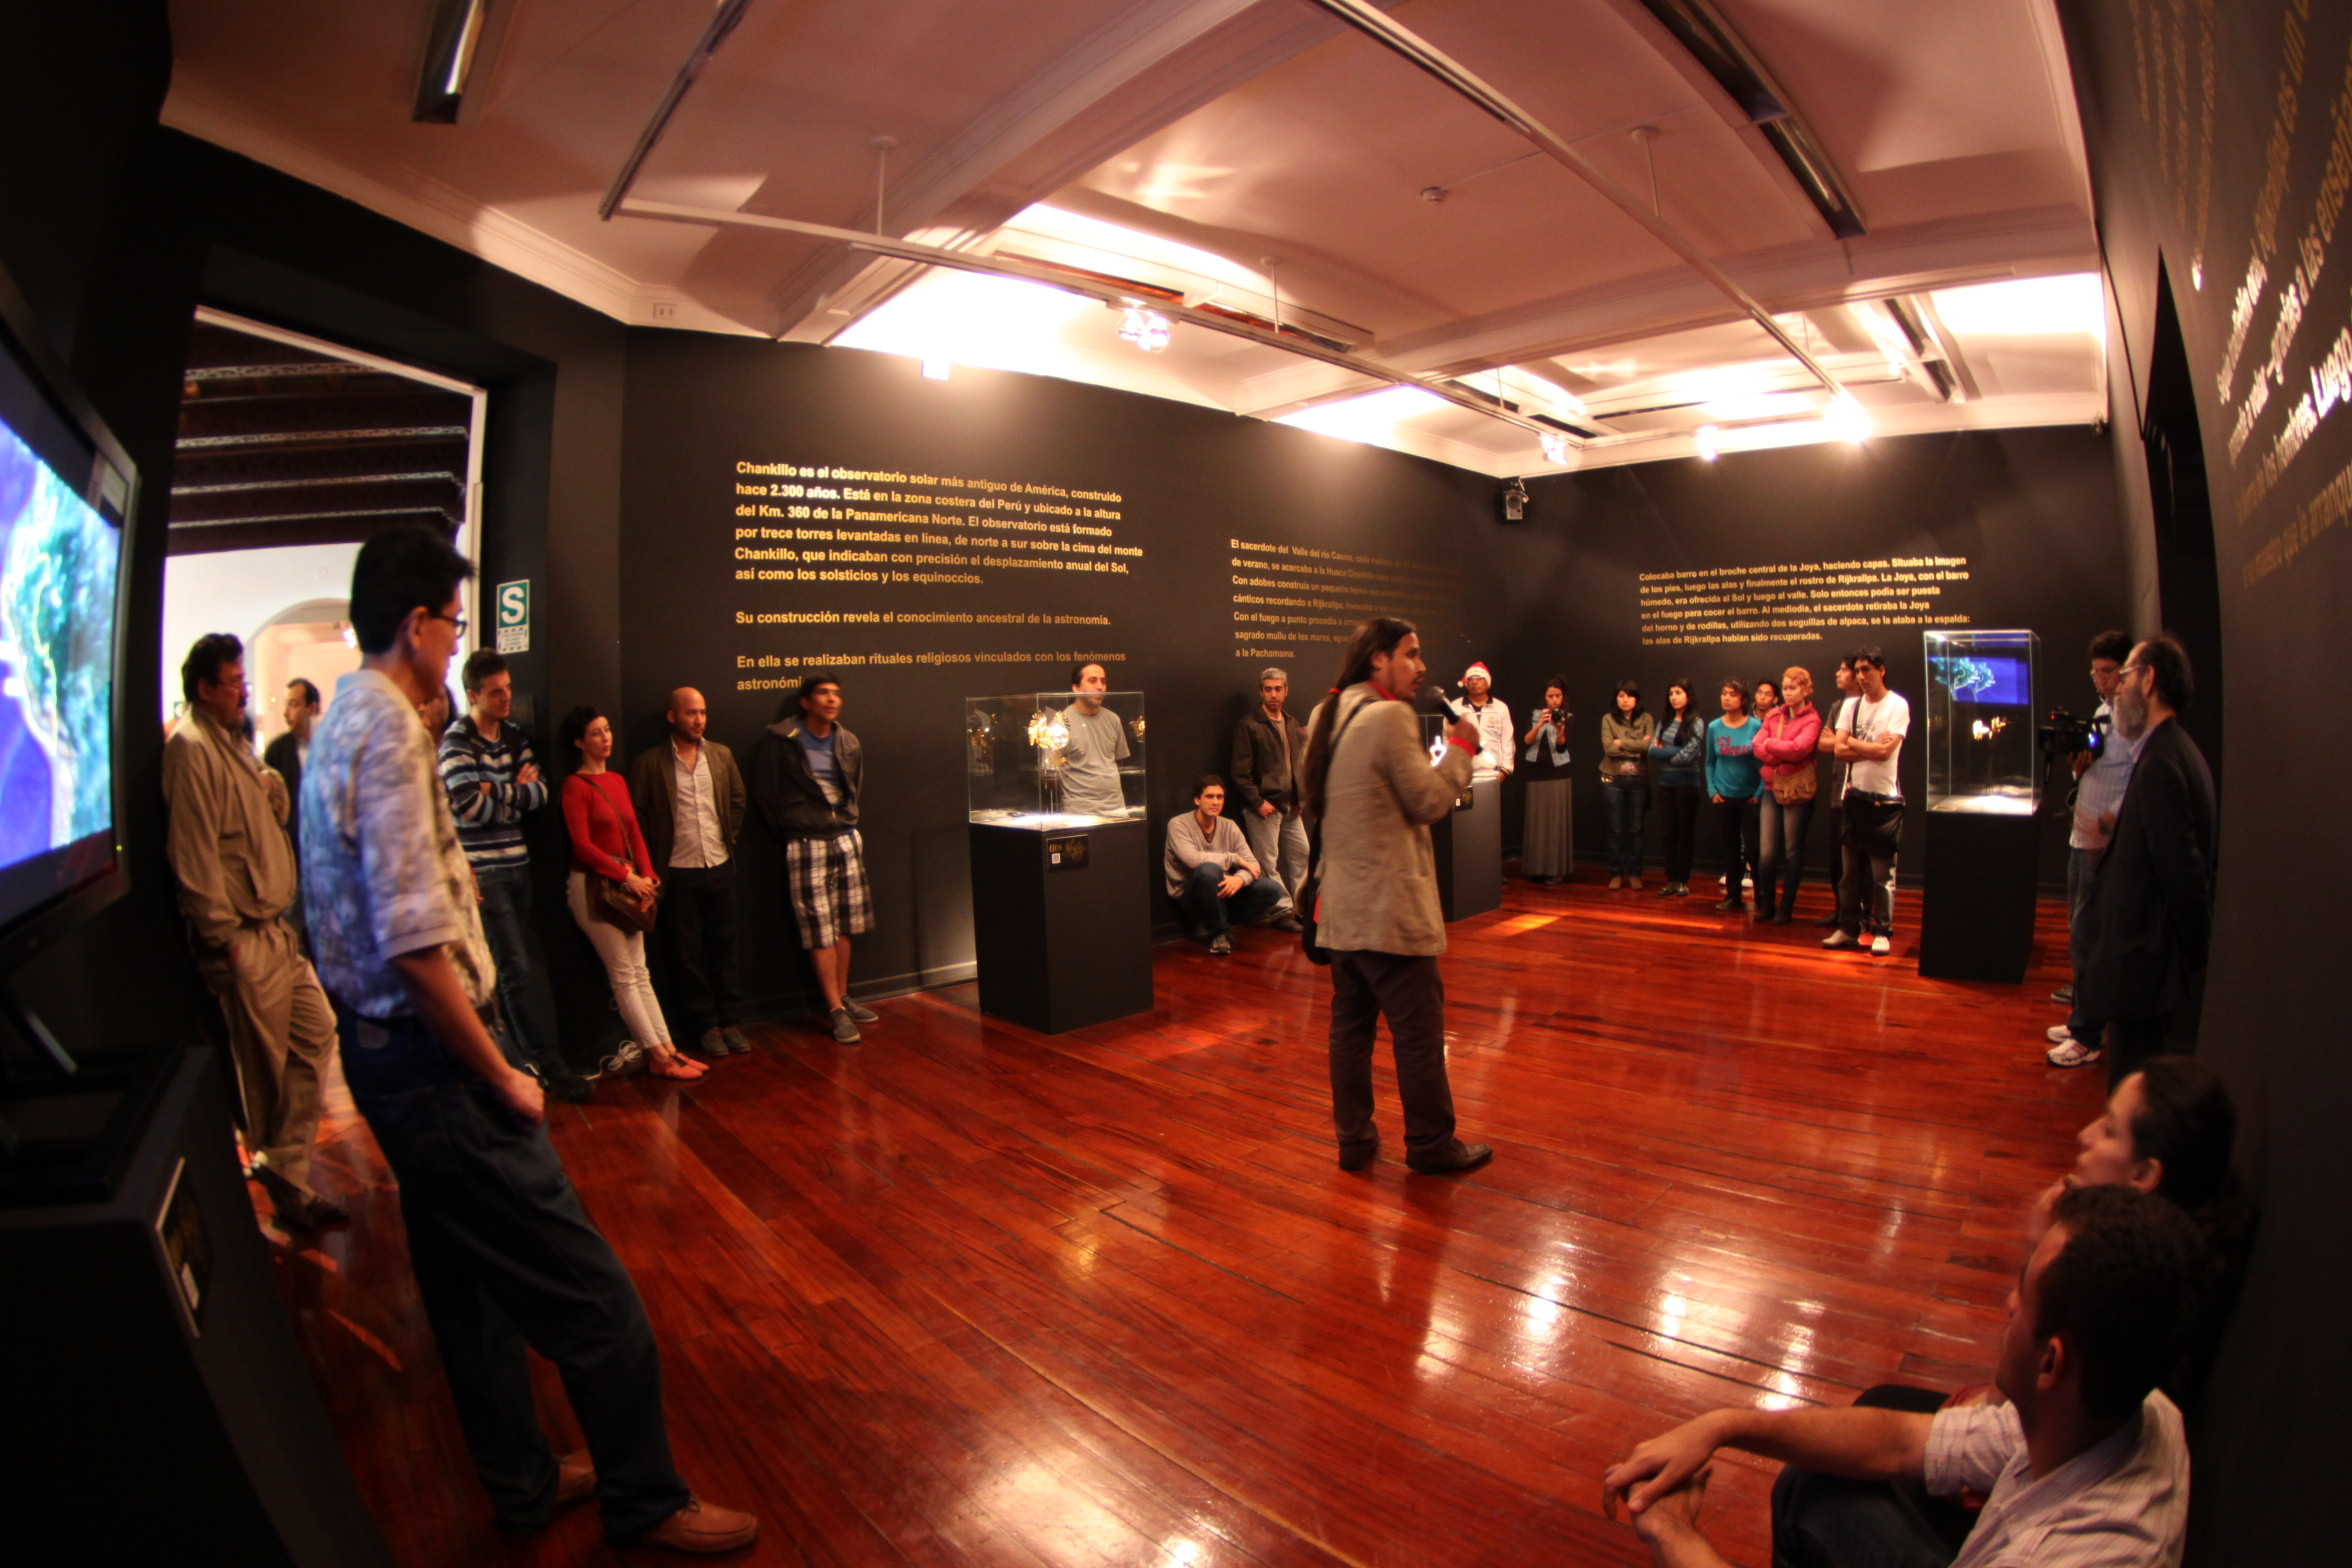 Visit of the exhibition